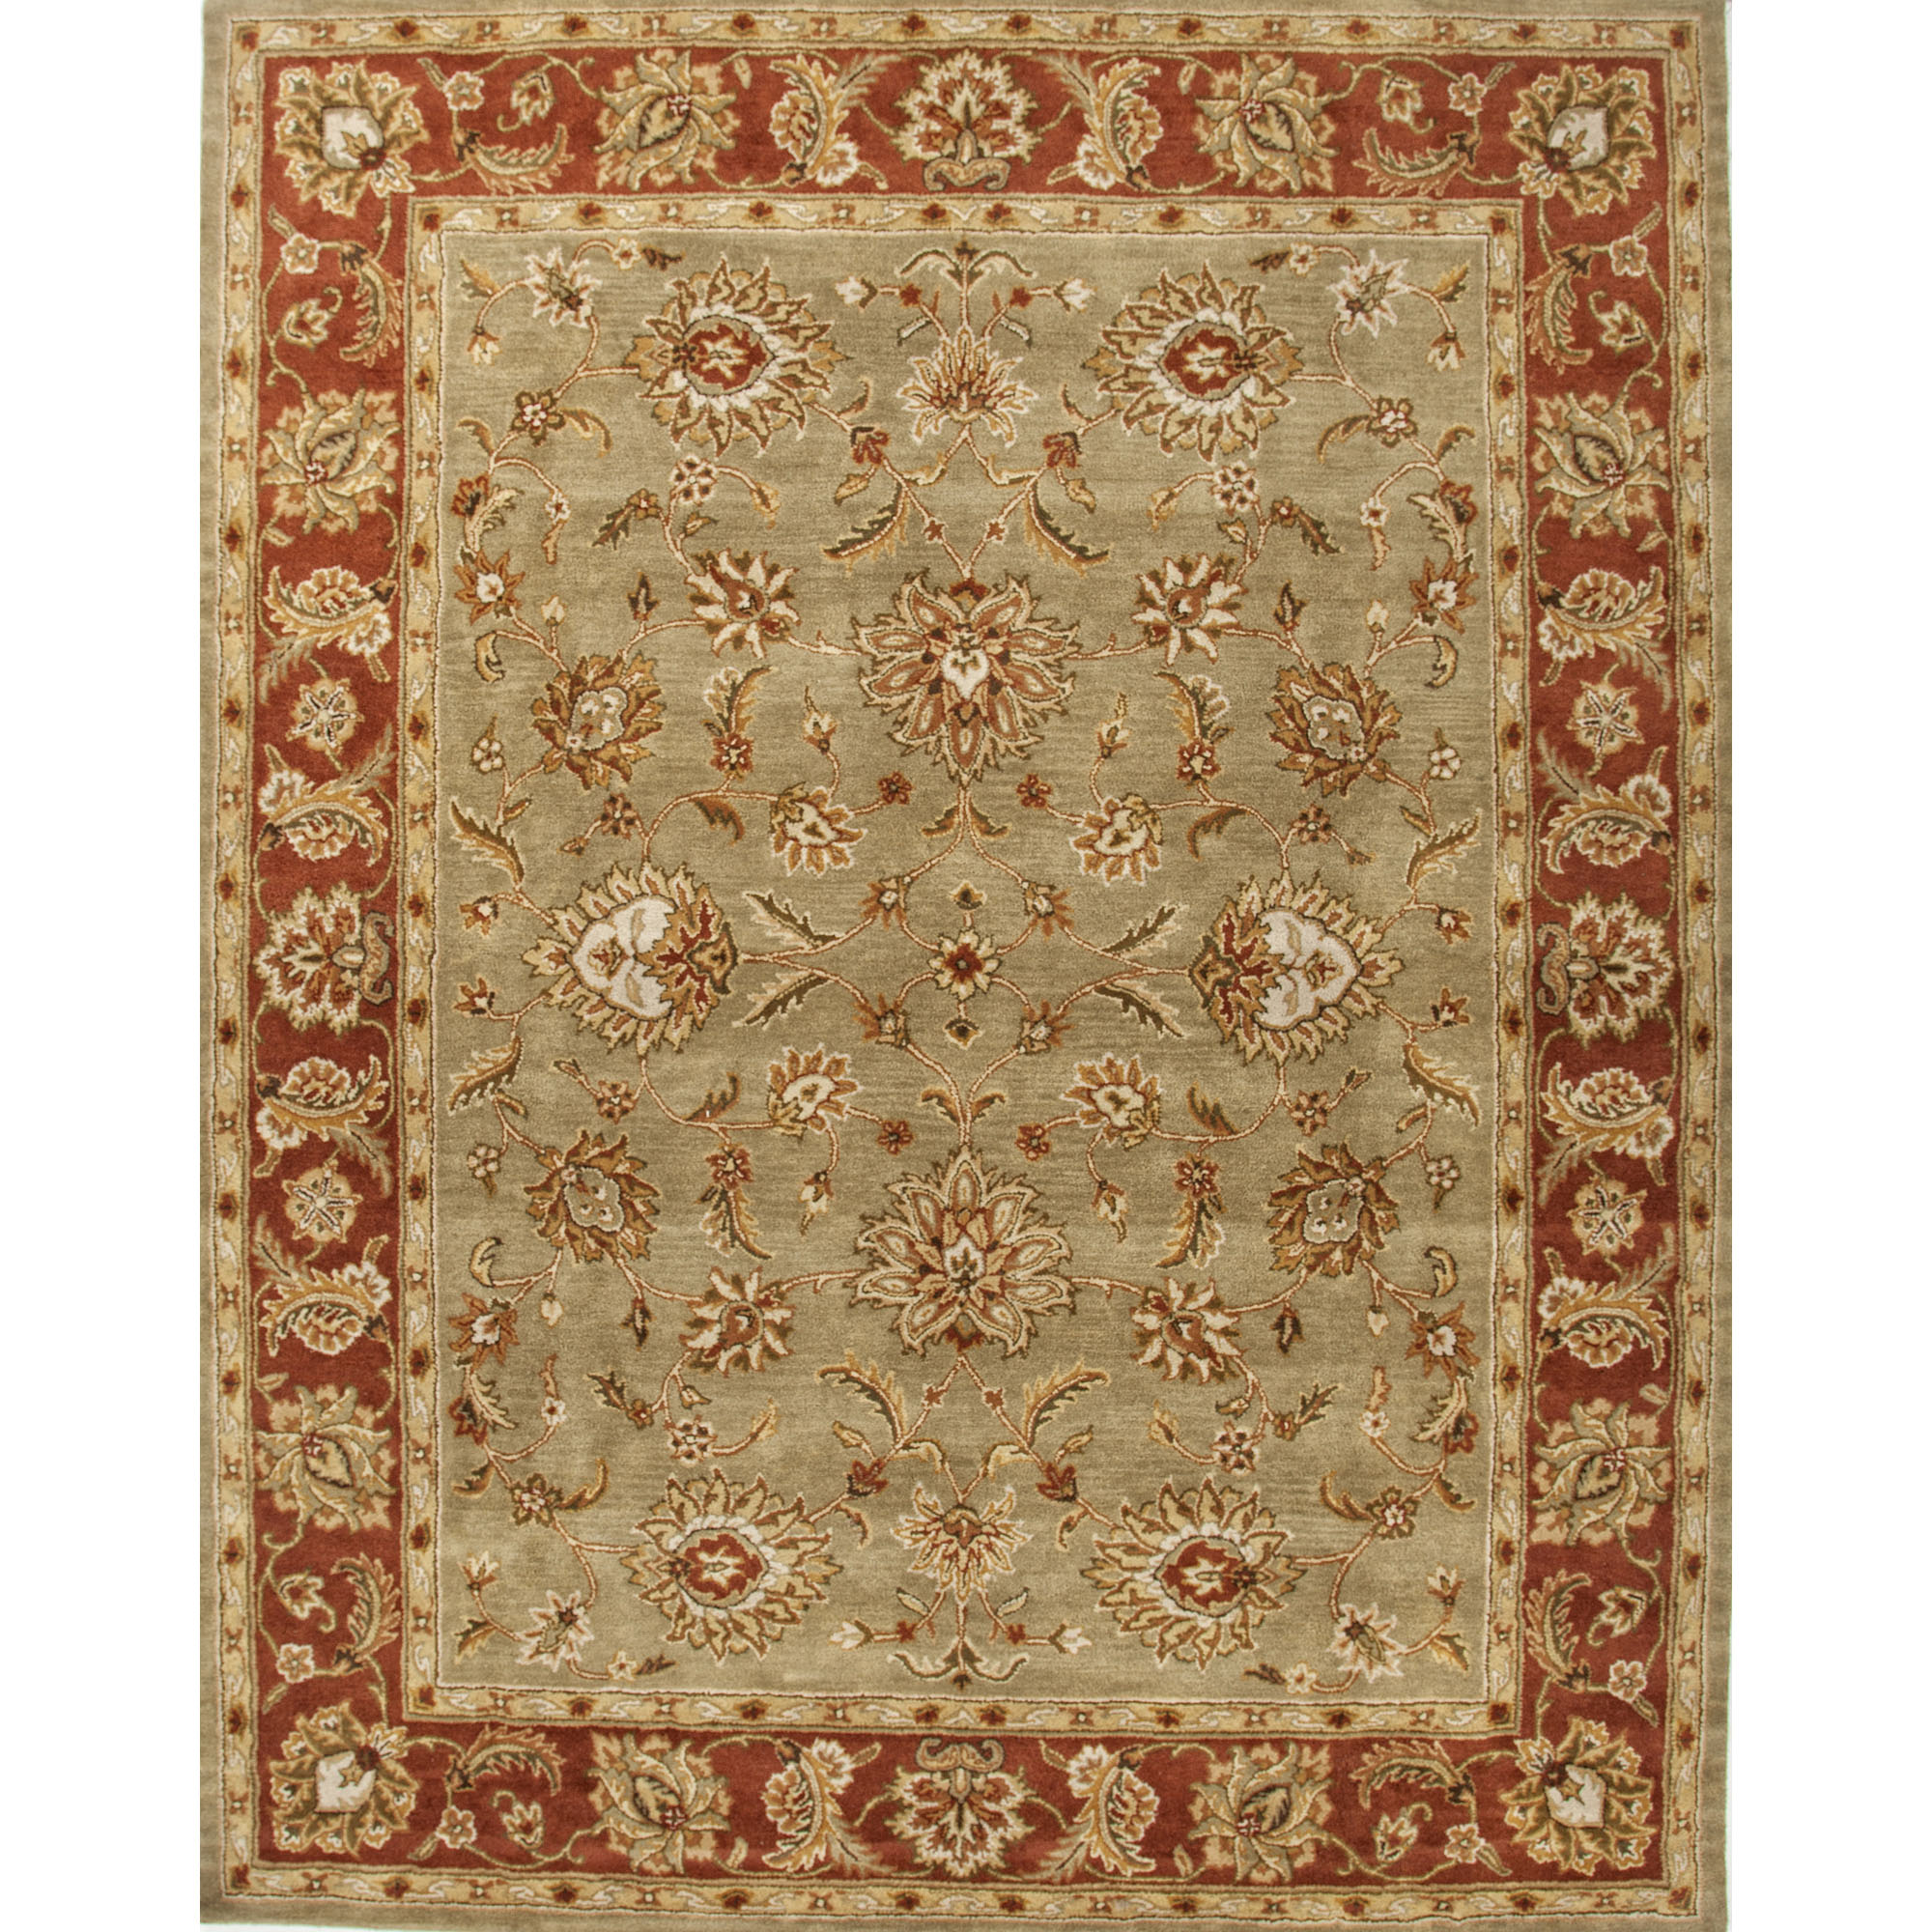 Mythos 12 x 15 Rug by JAIPUR Living at Sprintz Furniture